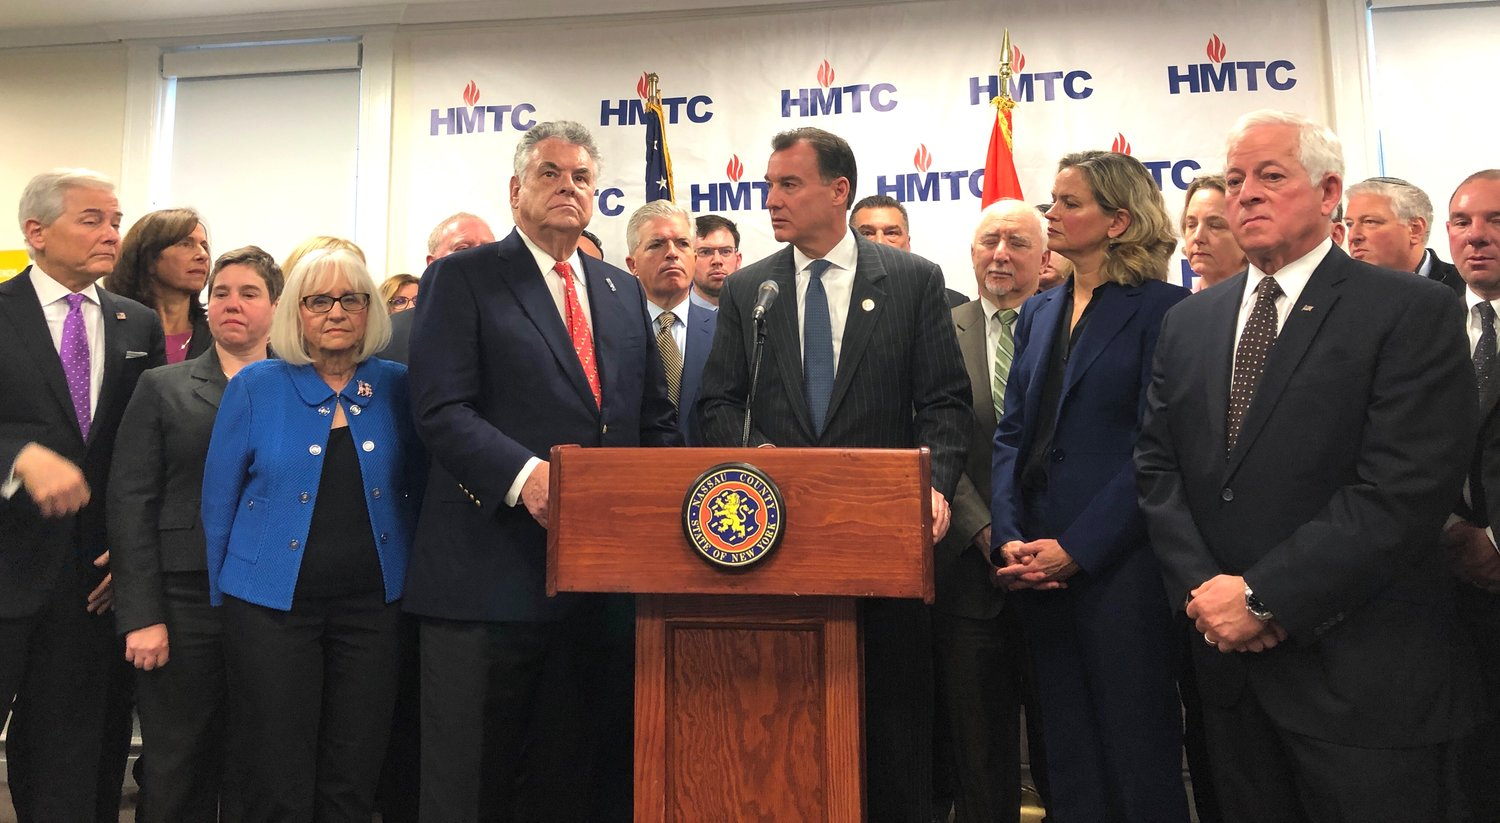 U.S. representatives Peter King and Tom Suozzi joined Nassau County Executive Laura Curran, her Suffolk County counterpart, Steve Bellone, and HMTC Chairman Steven Markowitz, third from the right, to announce the formation of an island-wide taskforce against anti-Semitism and symbols of hate at a news conference on Dec. 9.